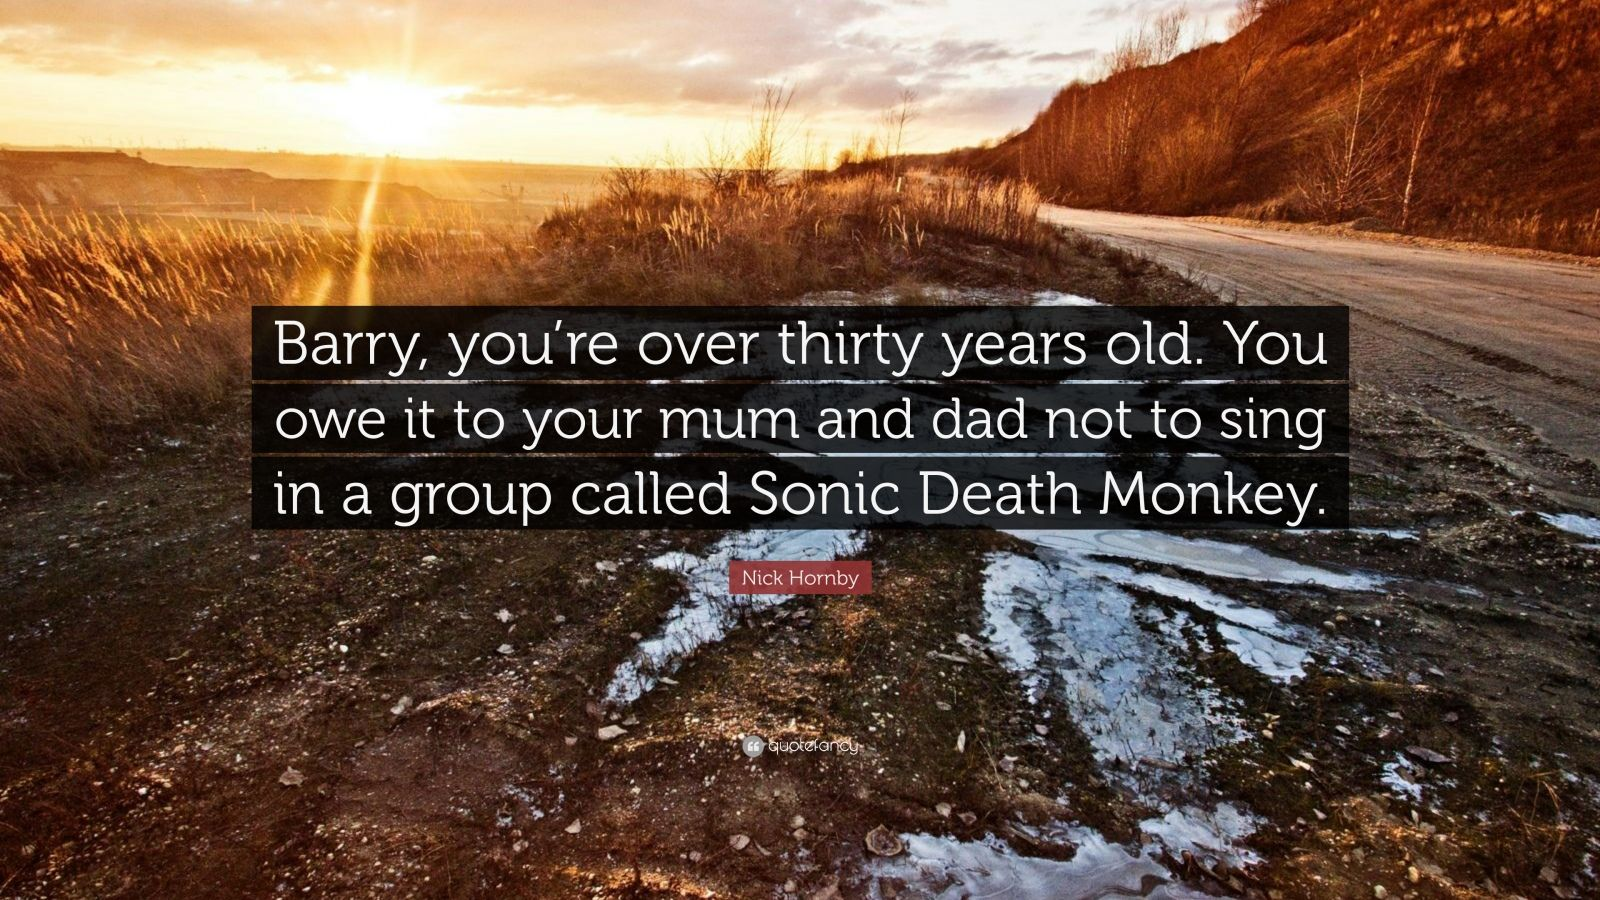 """Nick Hornby Quote: """"Barry, you're over thirty years old. You owe it to your mum and dad not to sing in a group called Sonic Death Monkey."""""""